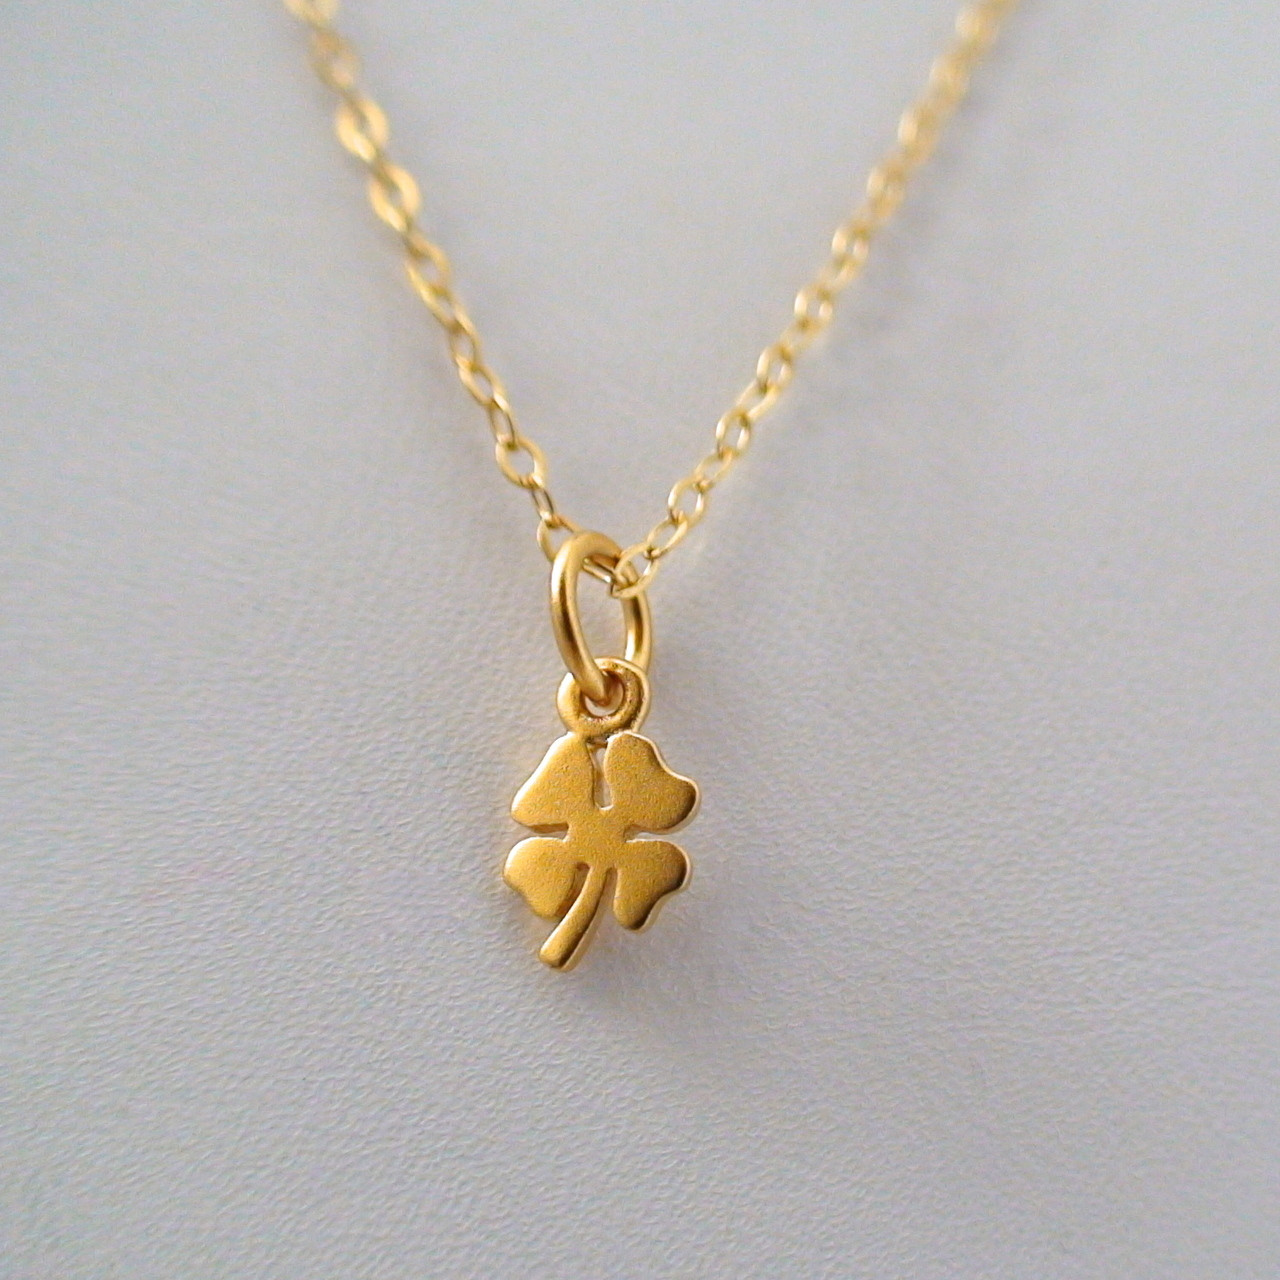 Tiny four leaf clover necklace 24k gold plated sterling aloadofball Choice Image